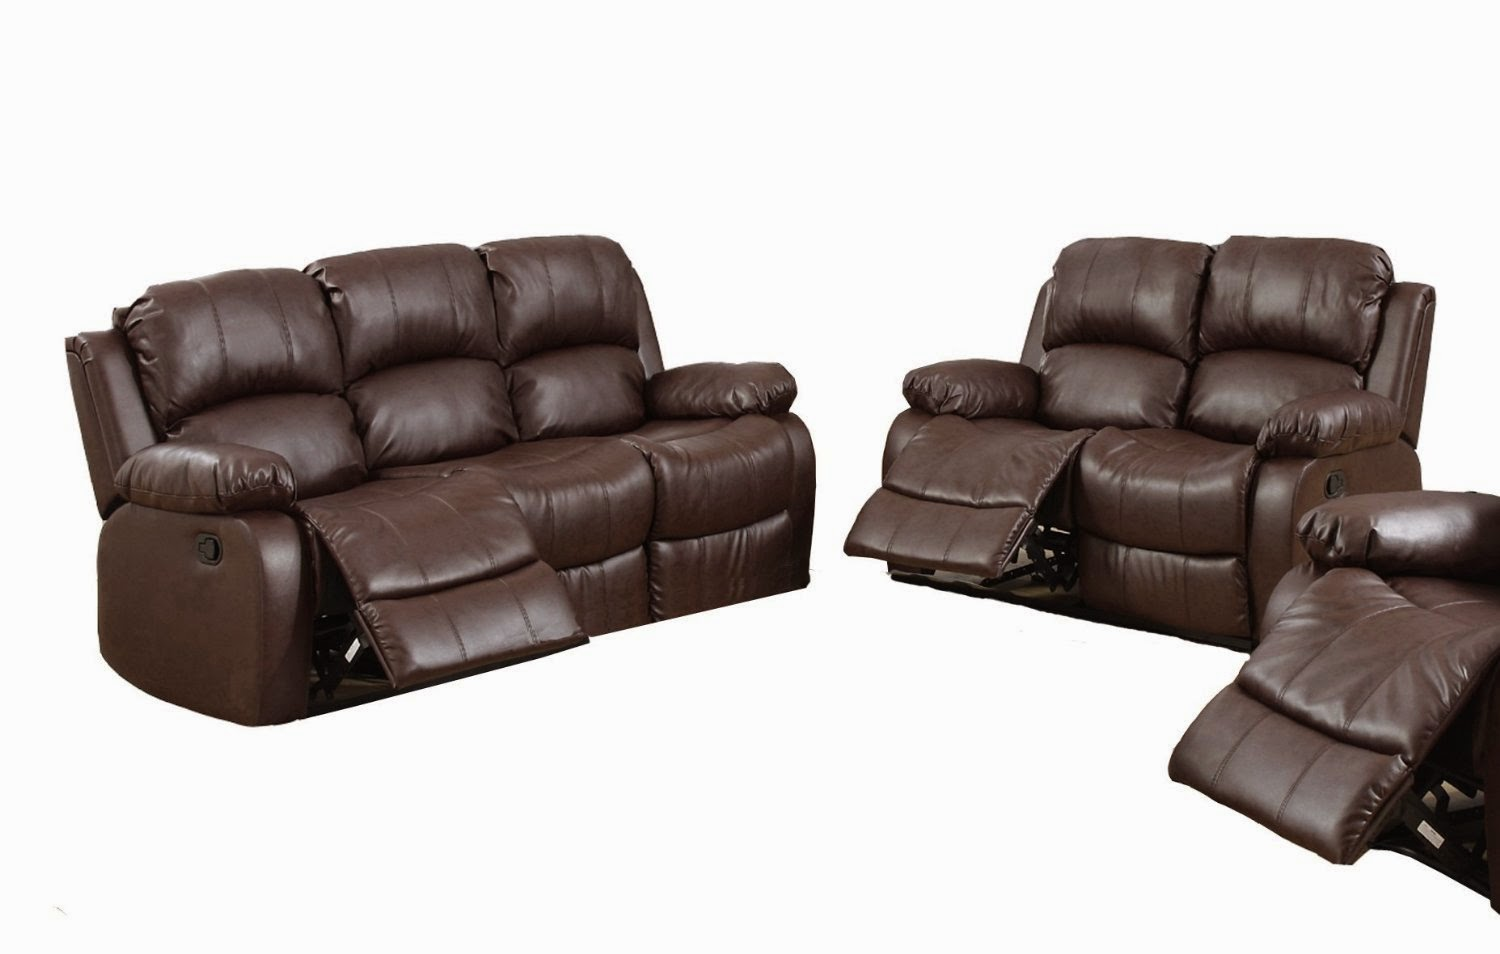 Cheap Leather Sofas Sets Bobs Sleeper Sofa Reclining And Loveseat April 2015